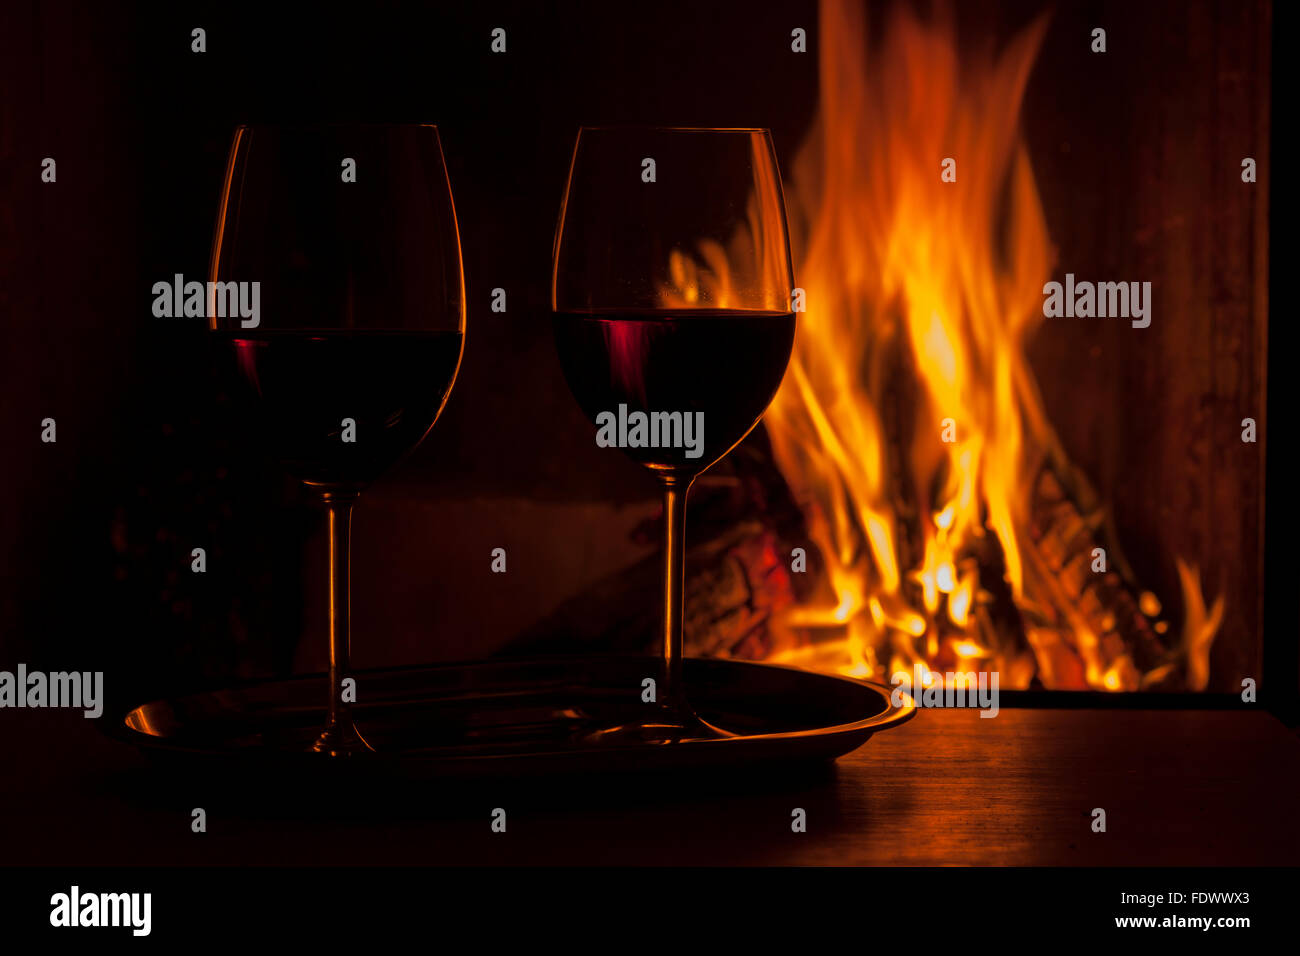 Flair Am Kamin Kaufbeuren Bocksbeutel Stockfotos And Bocksbeutel Bilder Alamy